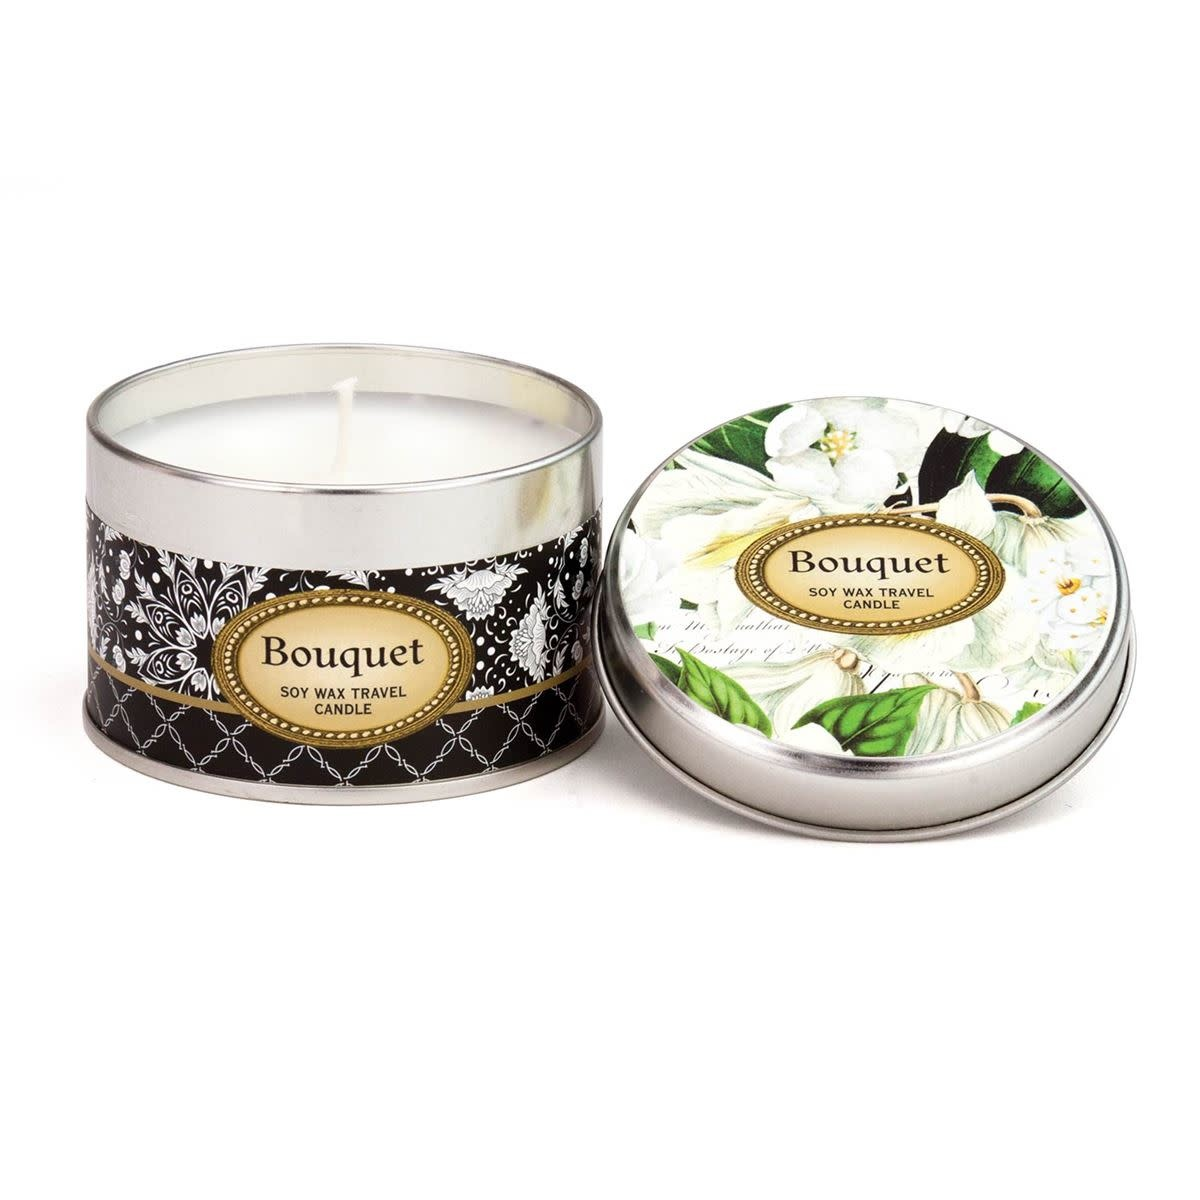 Michel Design Works Bouquet Travel Candle *final few